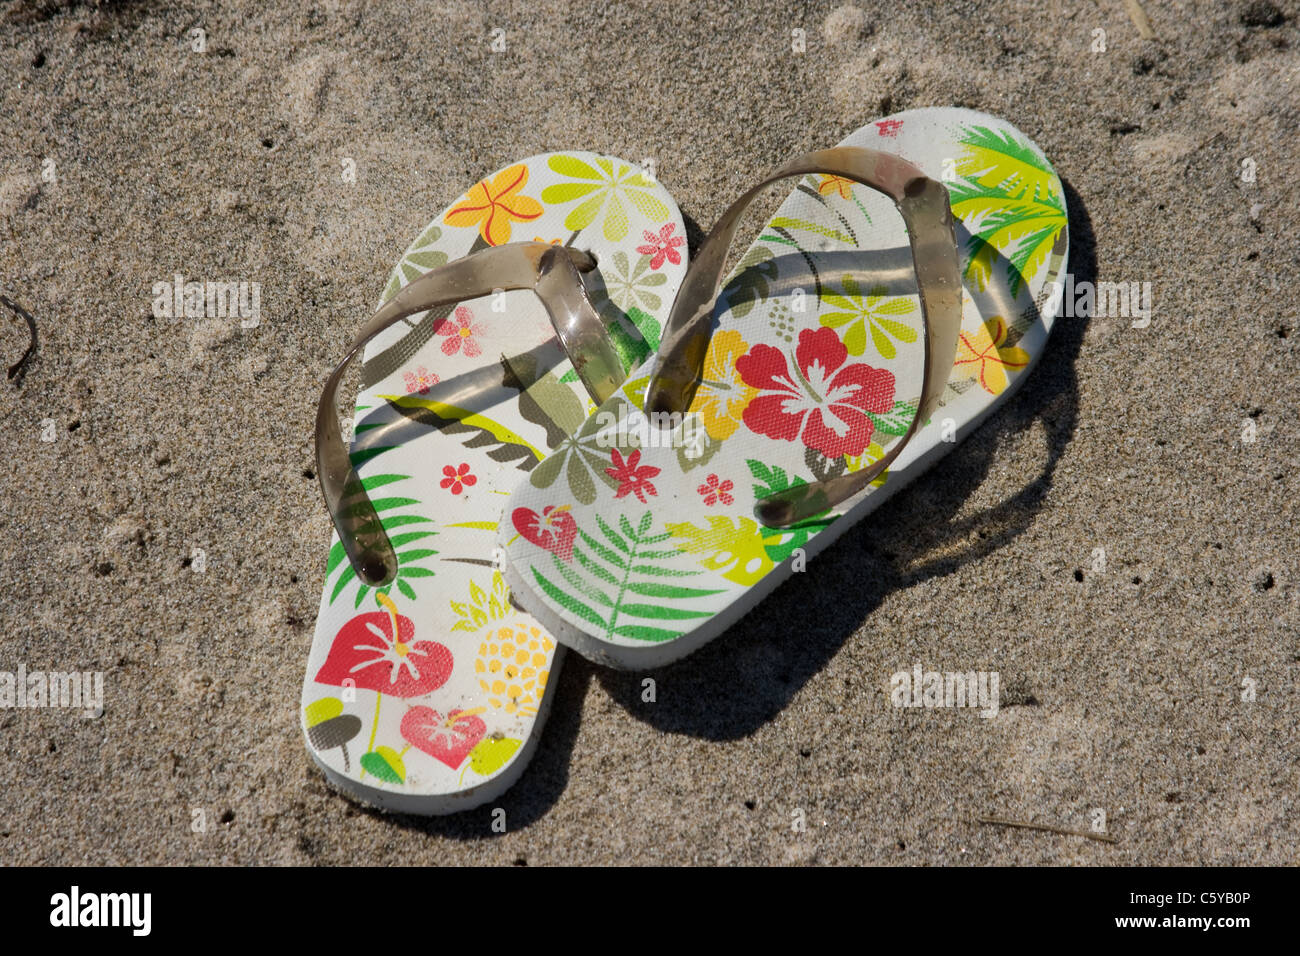 Idaho-flag Funny Flip Flops For Children Adults Men And Women Beach Sandals Pool Party Slippers